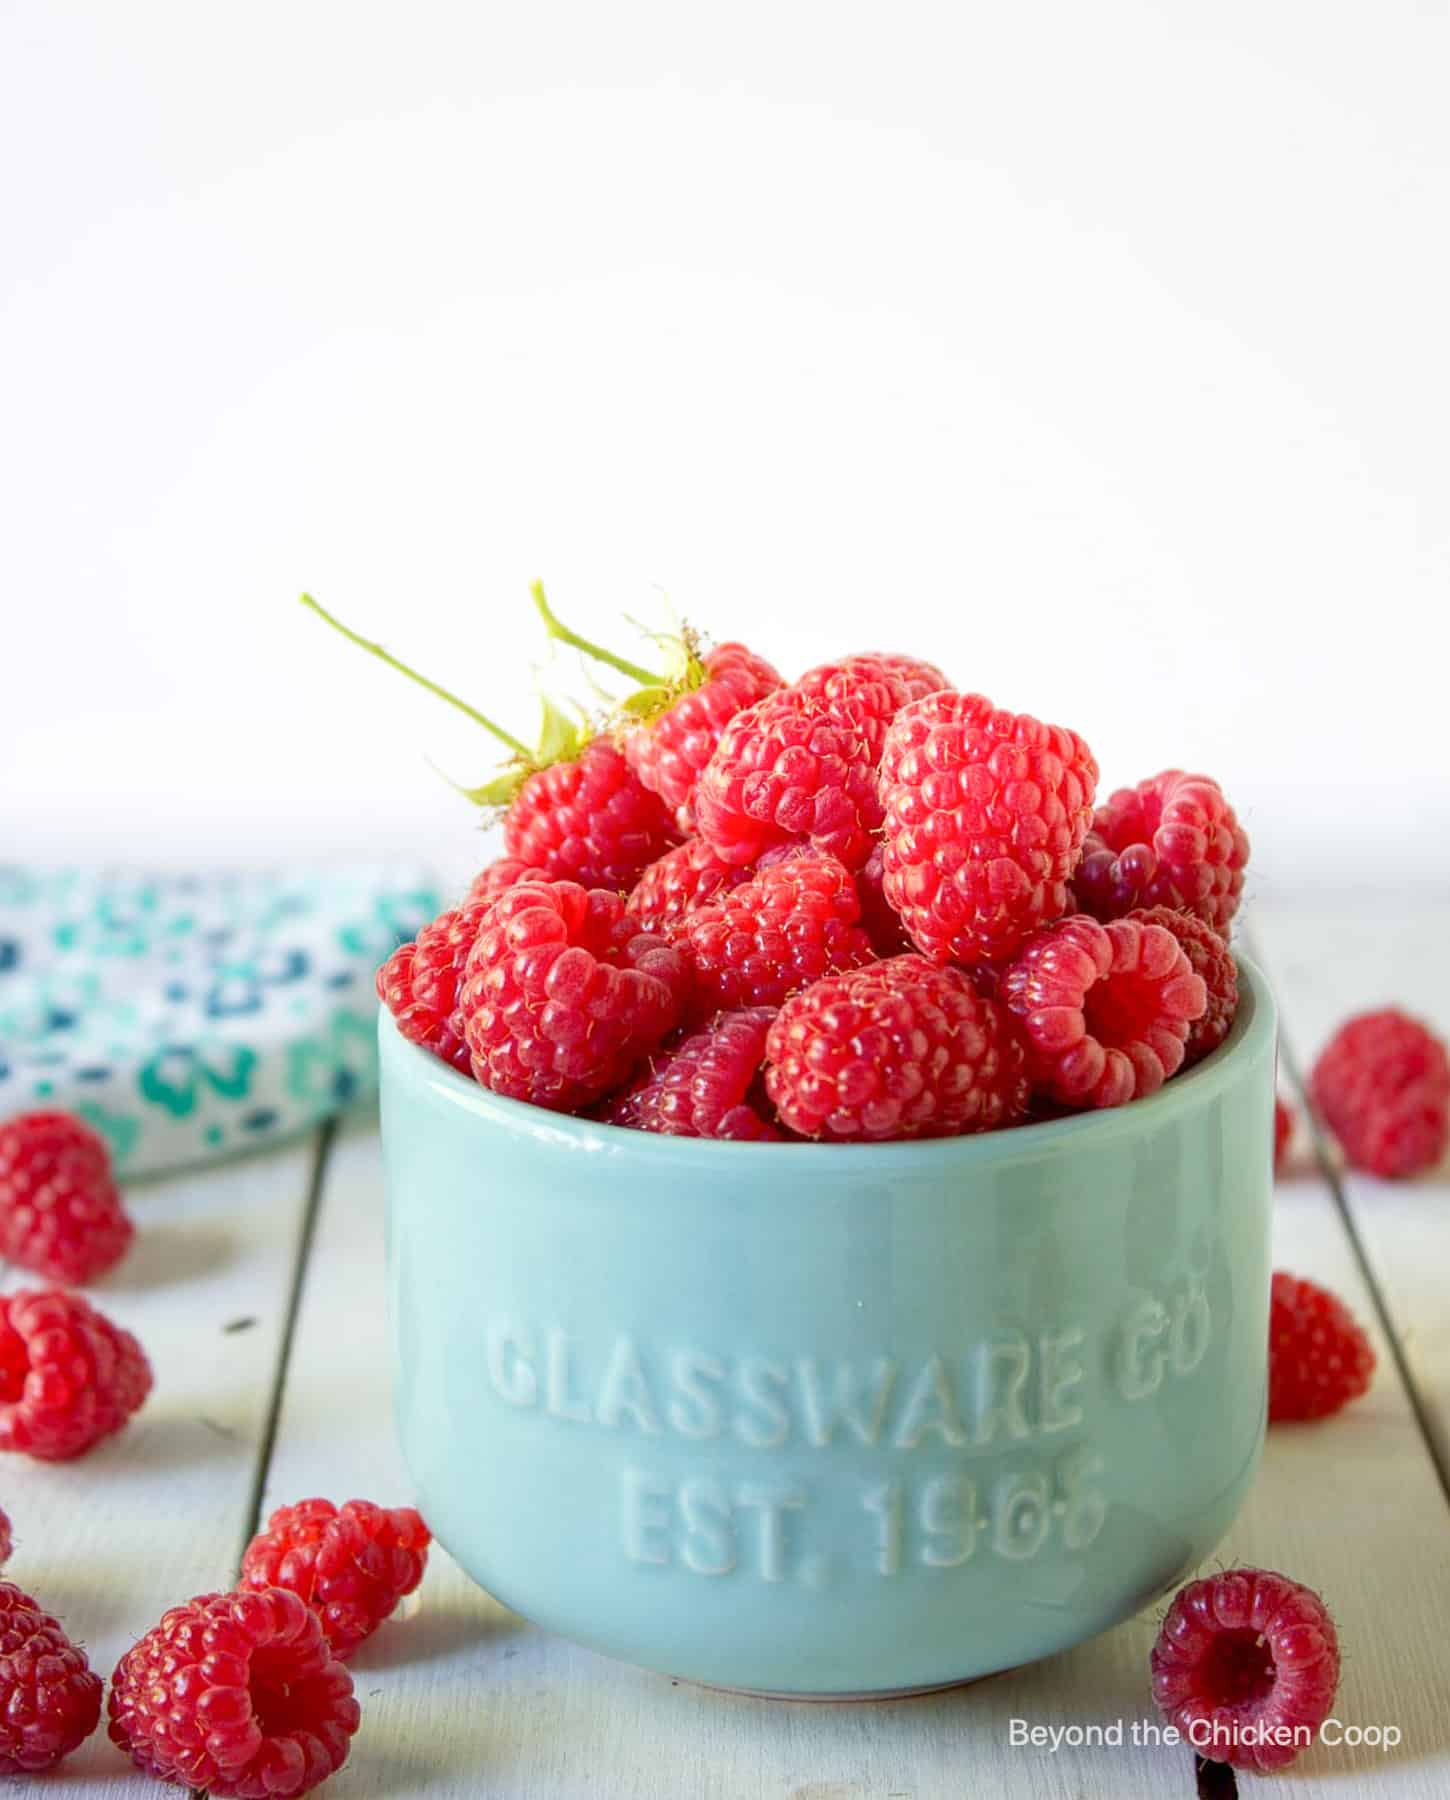 A small bowl filled with fresh raspberries.